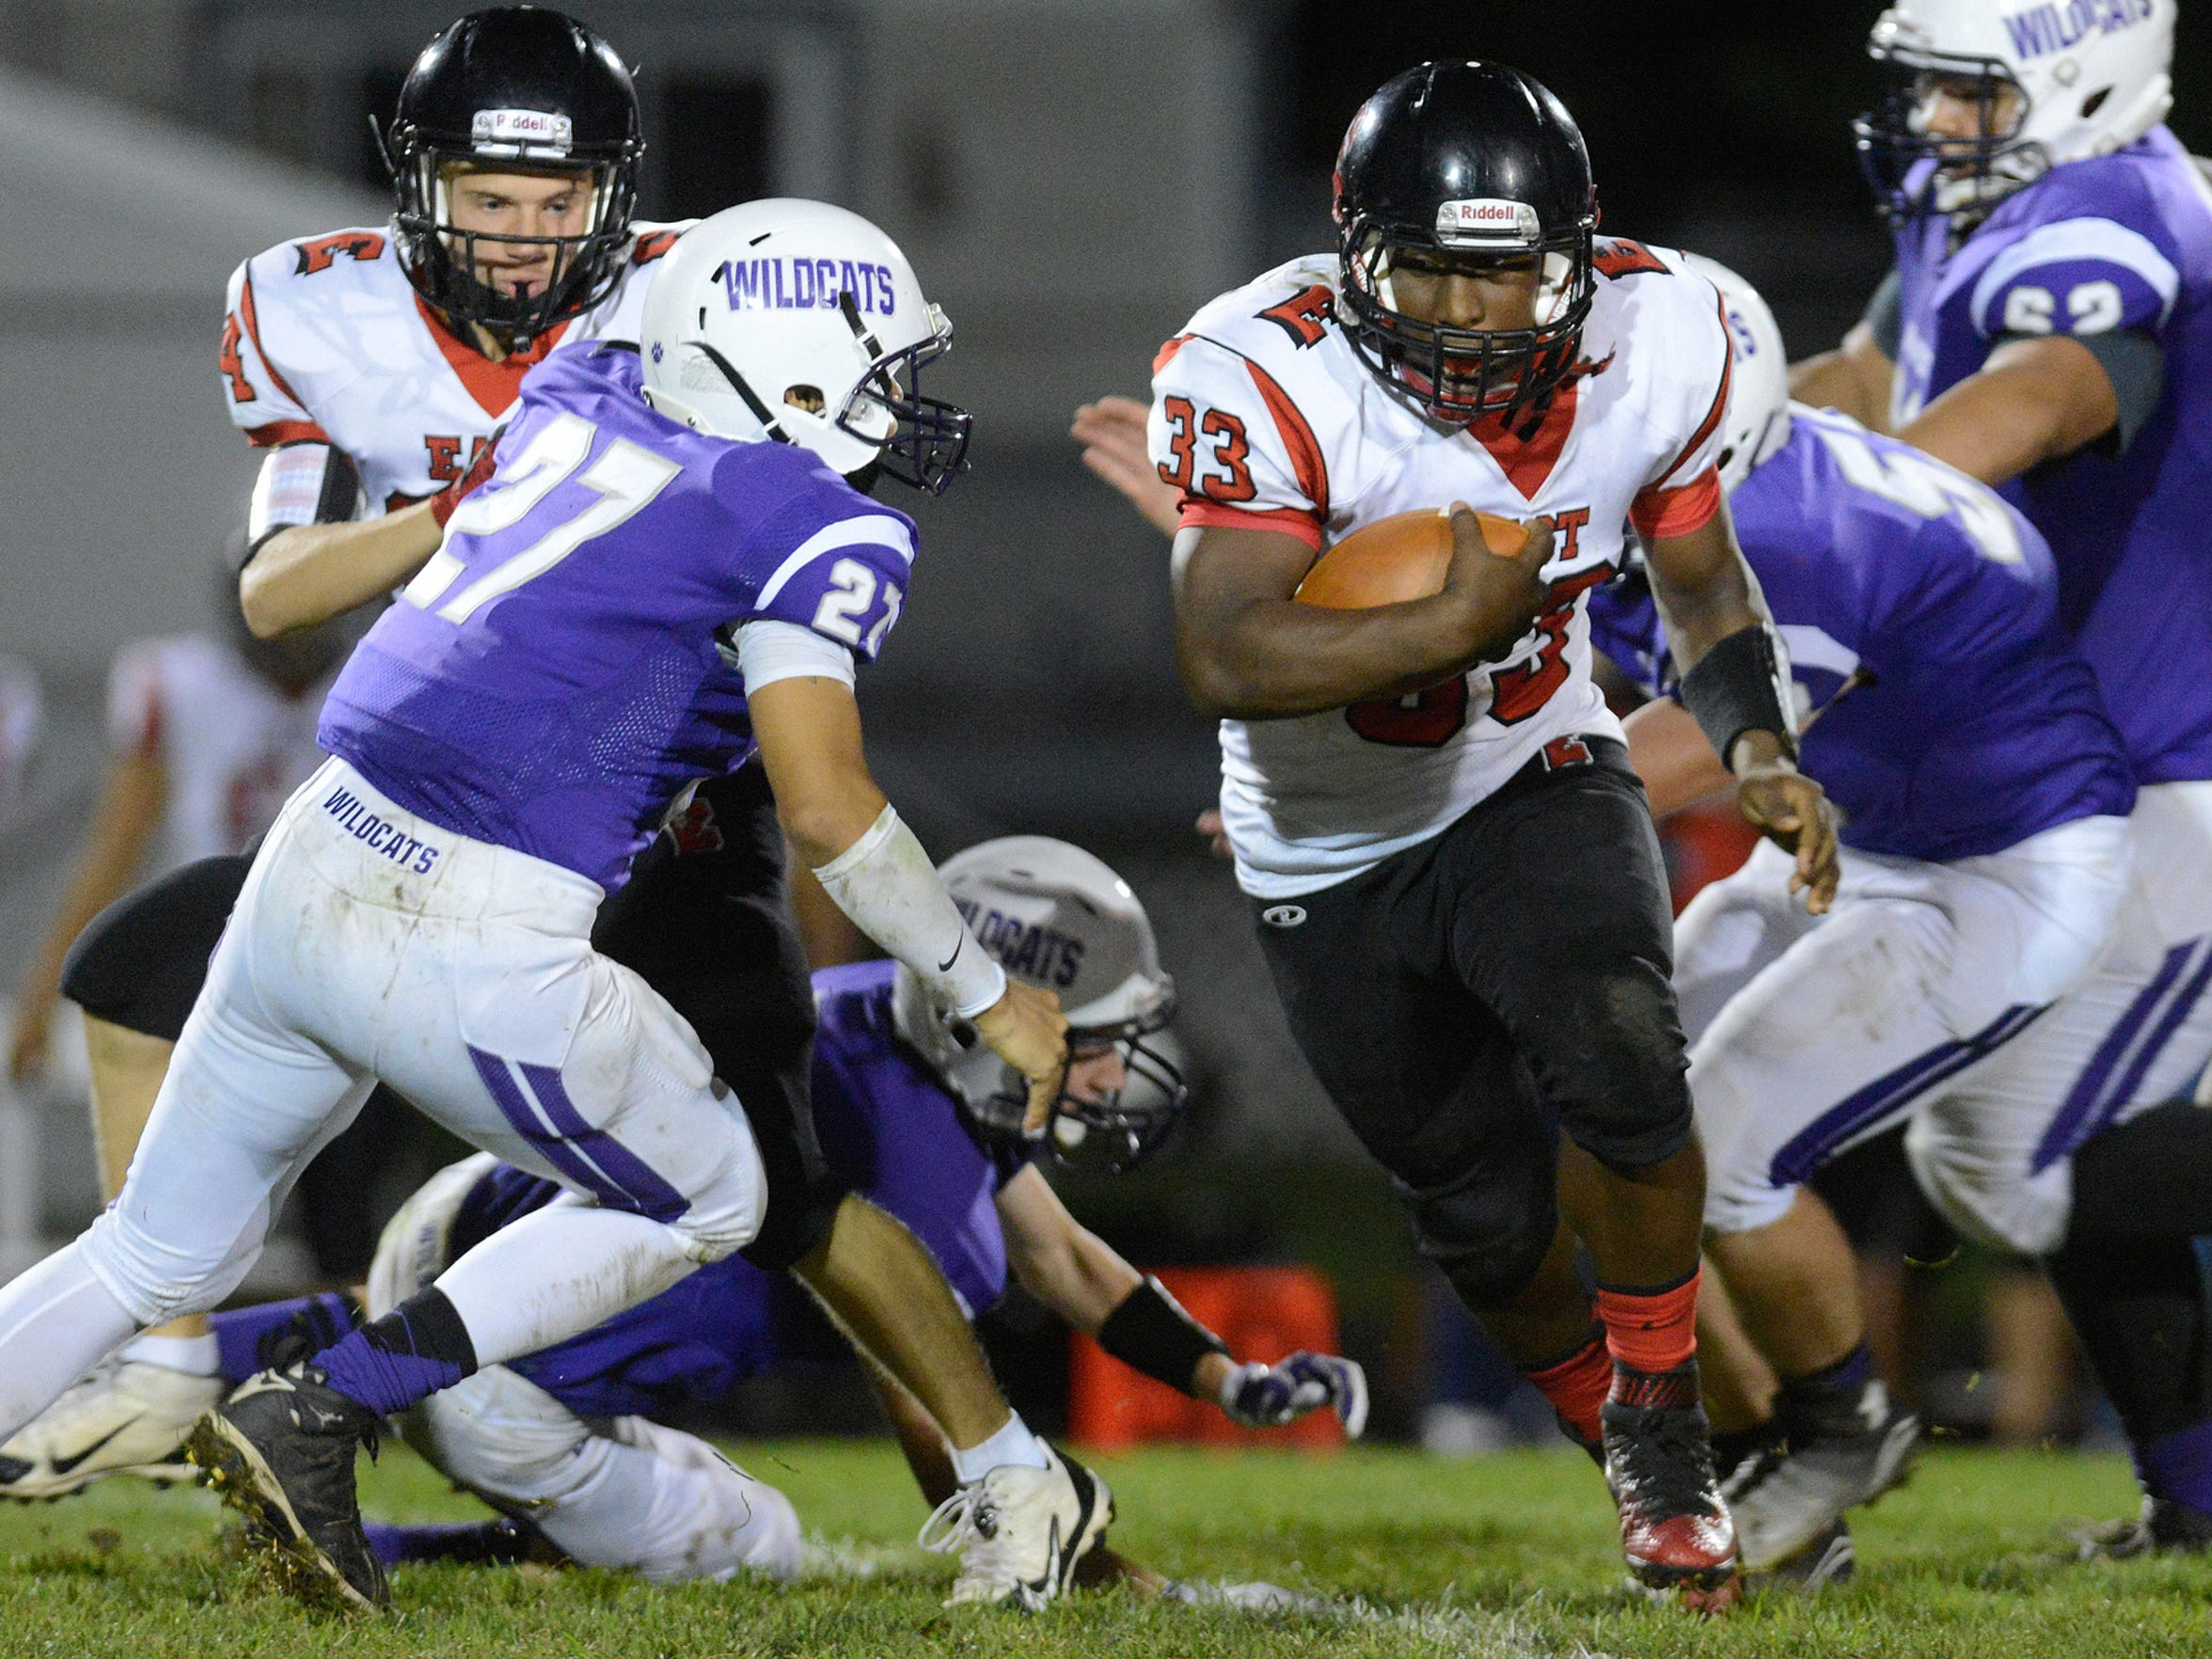 Green Bay East's Austin Short fights for more yardage as Green Bay West's Brandon Dudley closes in a Bay Conference game on Sept. 18. West and East moved from the Fox River Classic Conference to the Bay Conference.